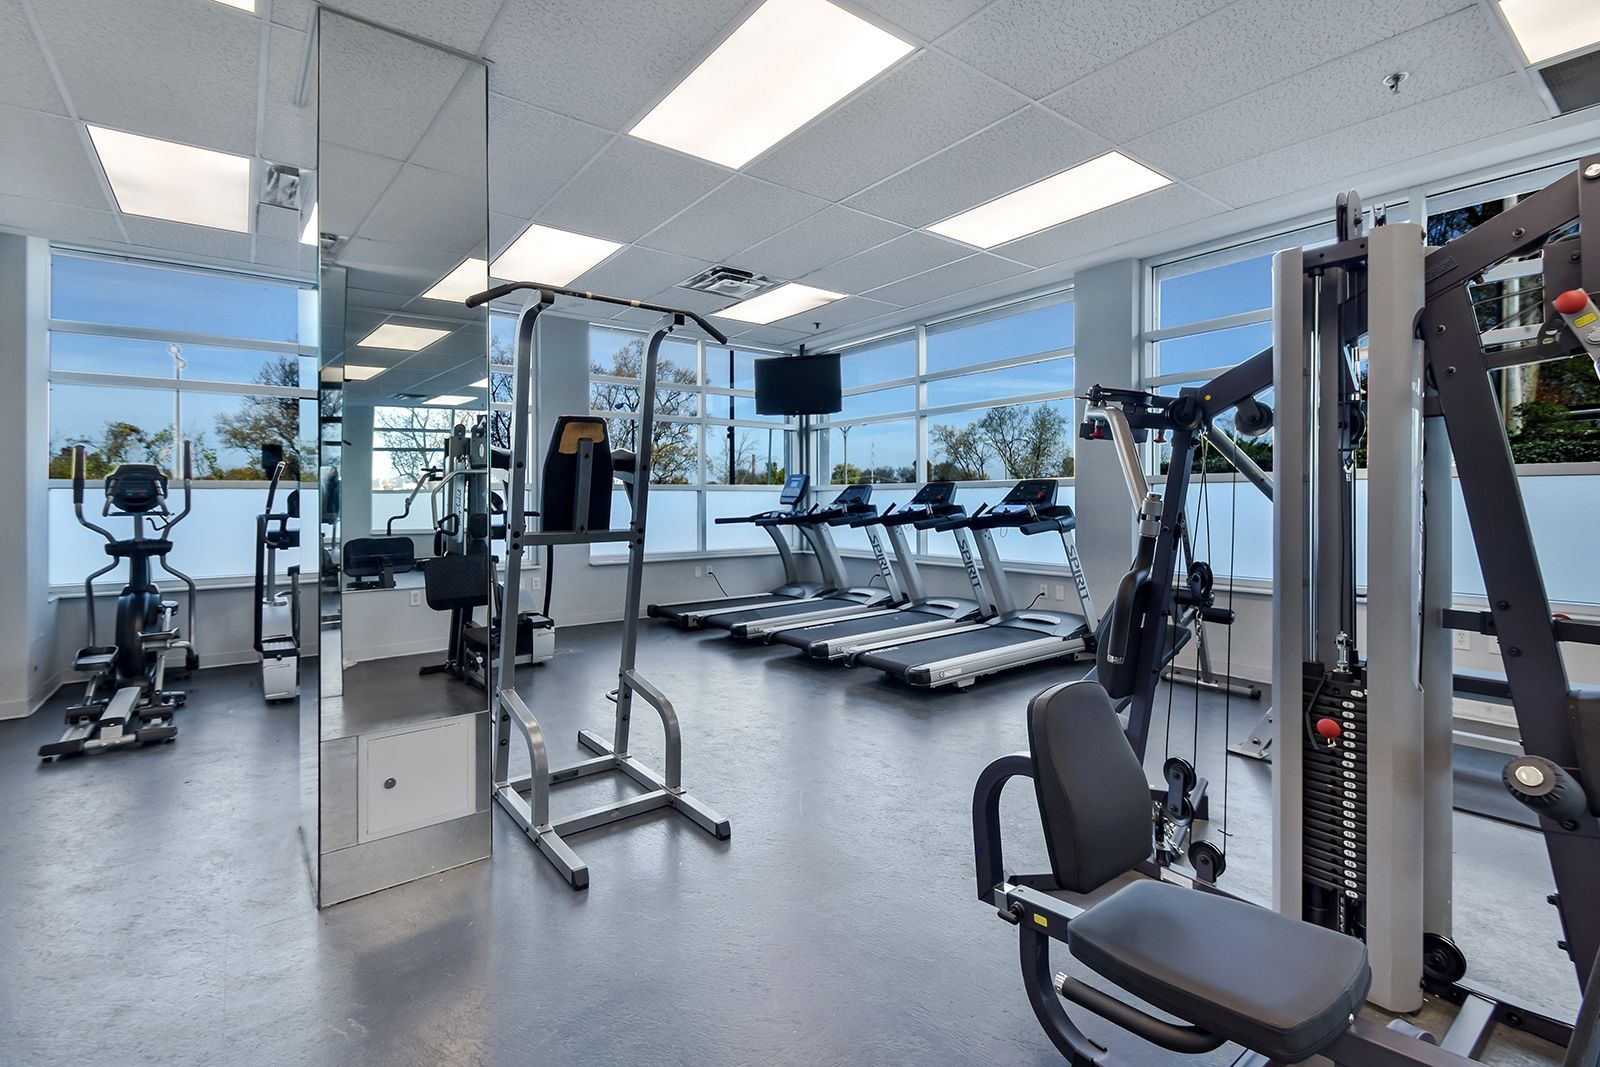 Get your sweat on in our stateoftheart fitness center